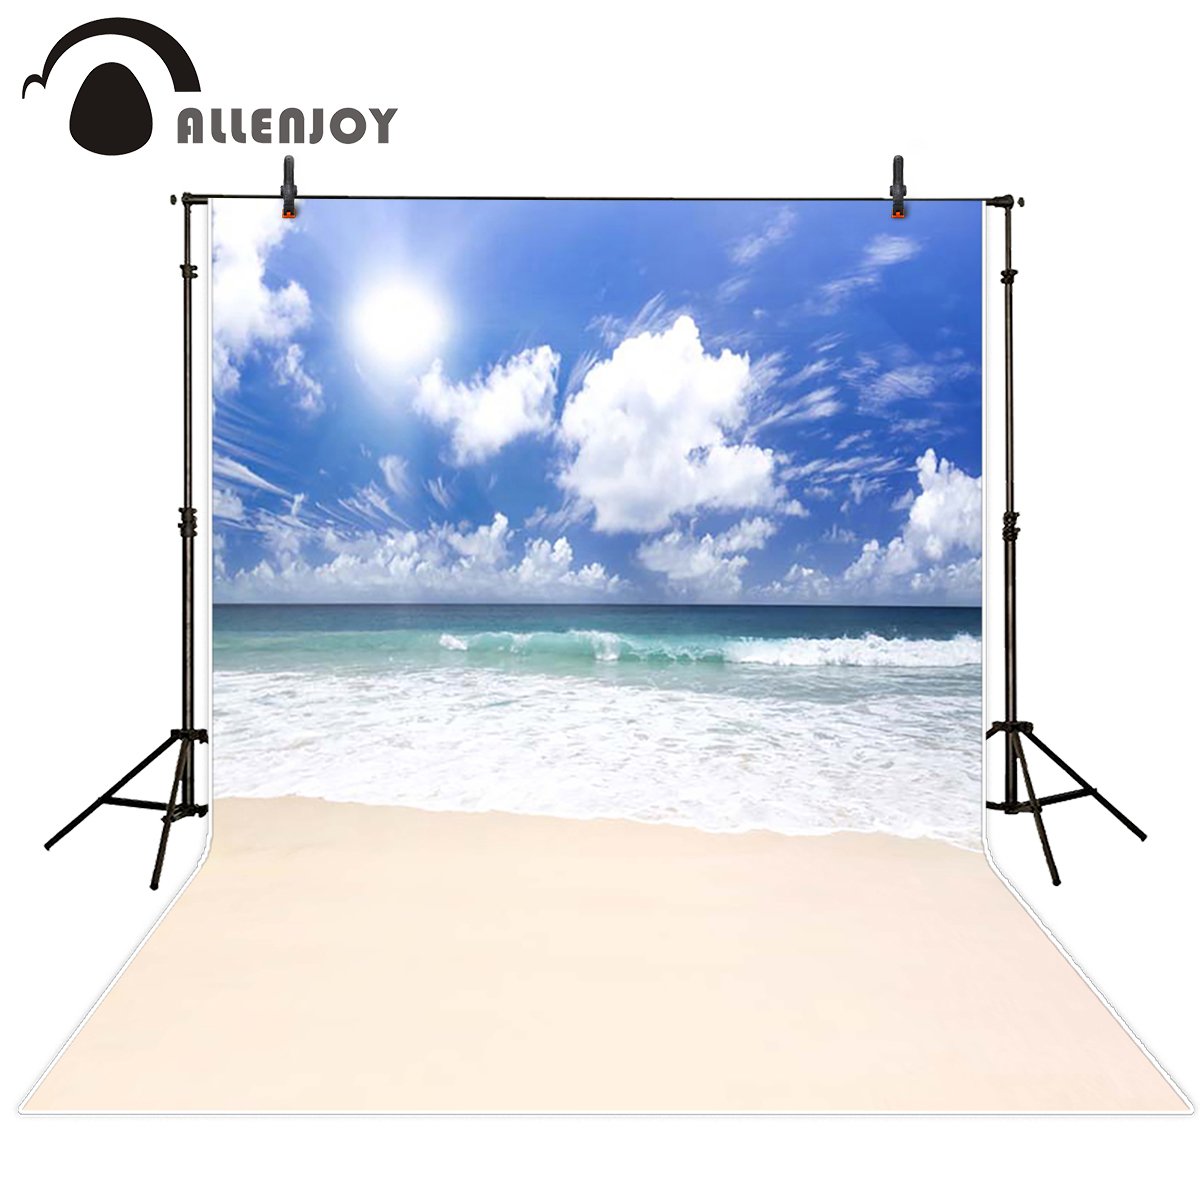 Allenjoy seaside Photo background Sunny beach summer sea sky seaside photography backdrops Background photography photocall